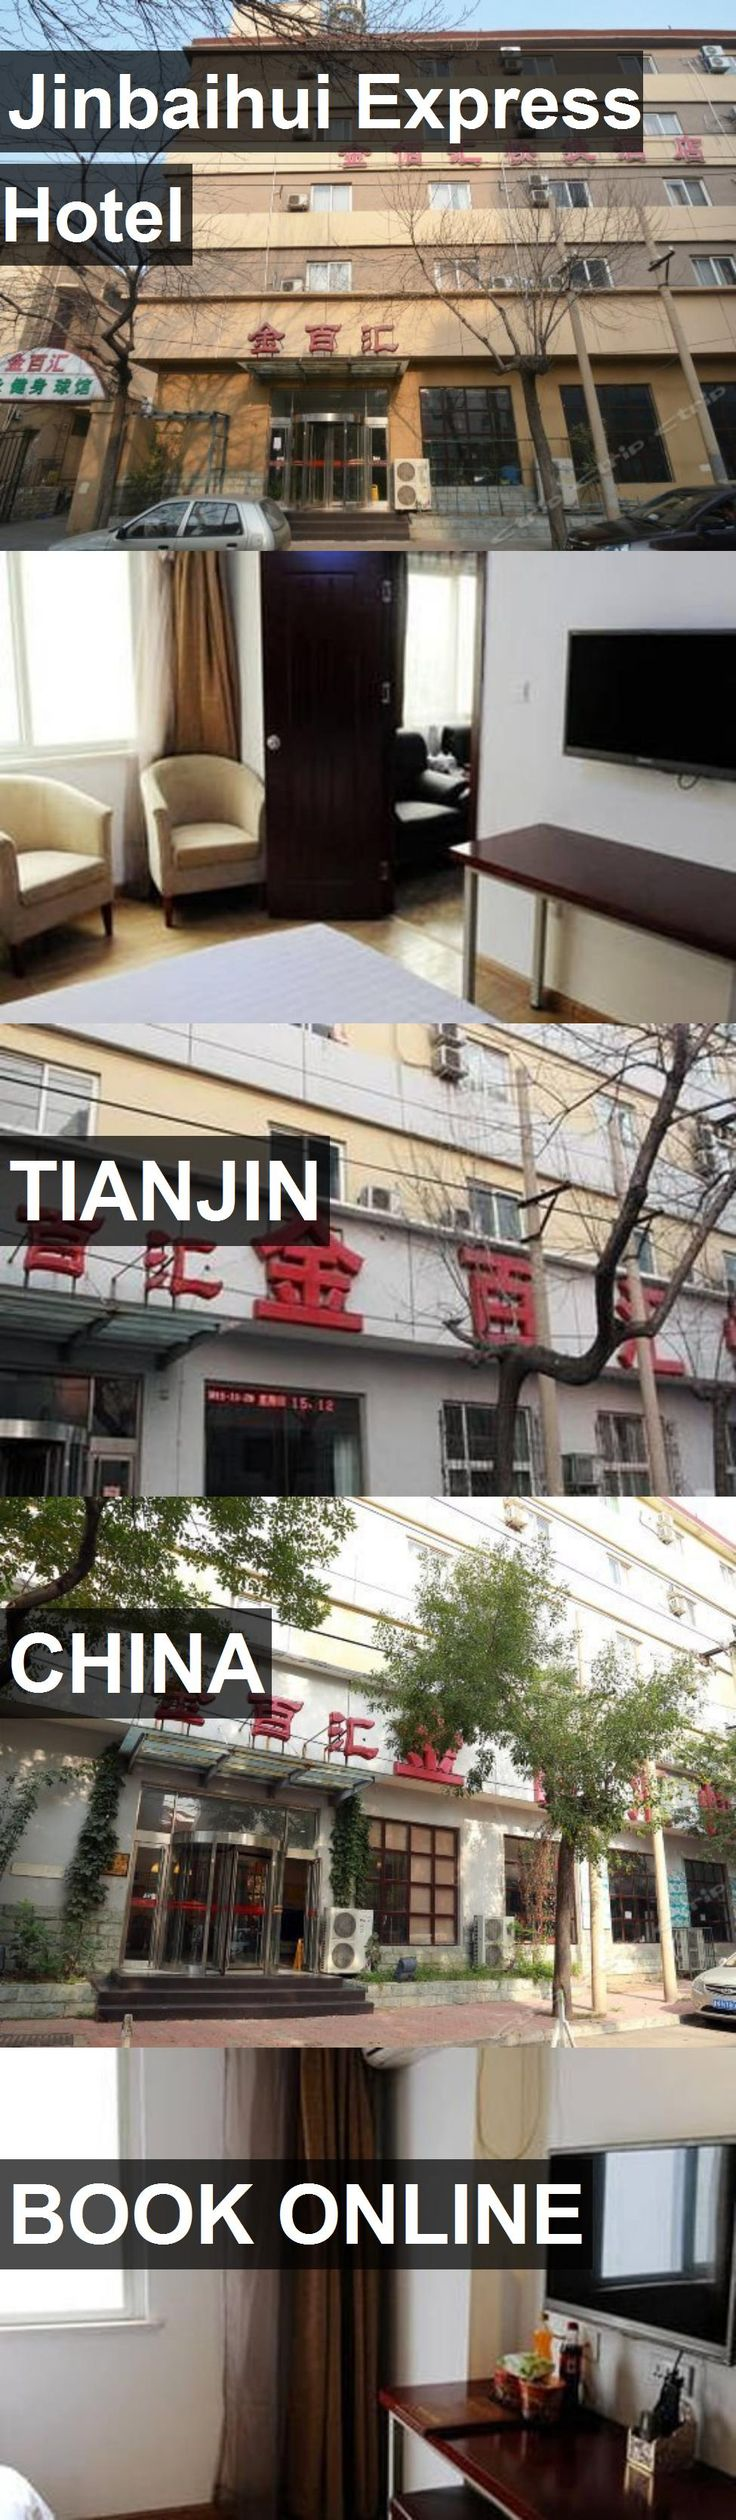 Jinbaihui Express Hotel in Tianjin, China. For more information, photos, reviews and best prices please follow the link. #China #Tianjin #travel #vacation #hotel